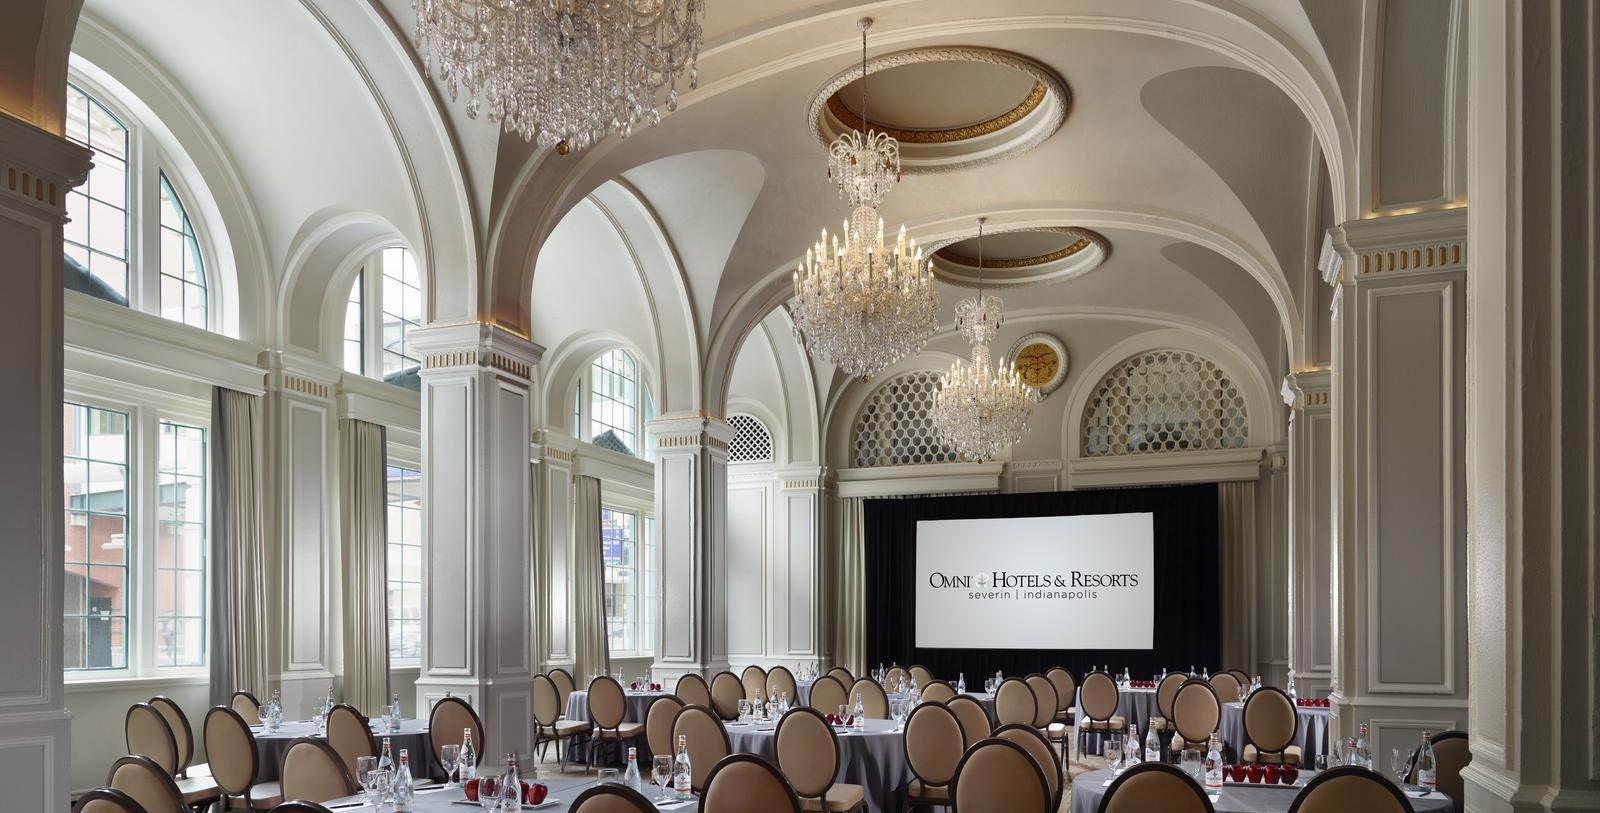 Image of Severin Ballroom, Omni Severin Hotel, Indianapolis, Indiana, 1913, Member of Historic Hotels of America, Experience